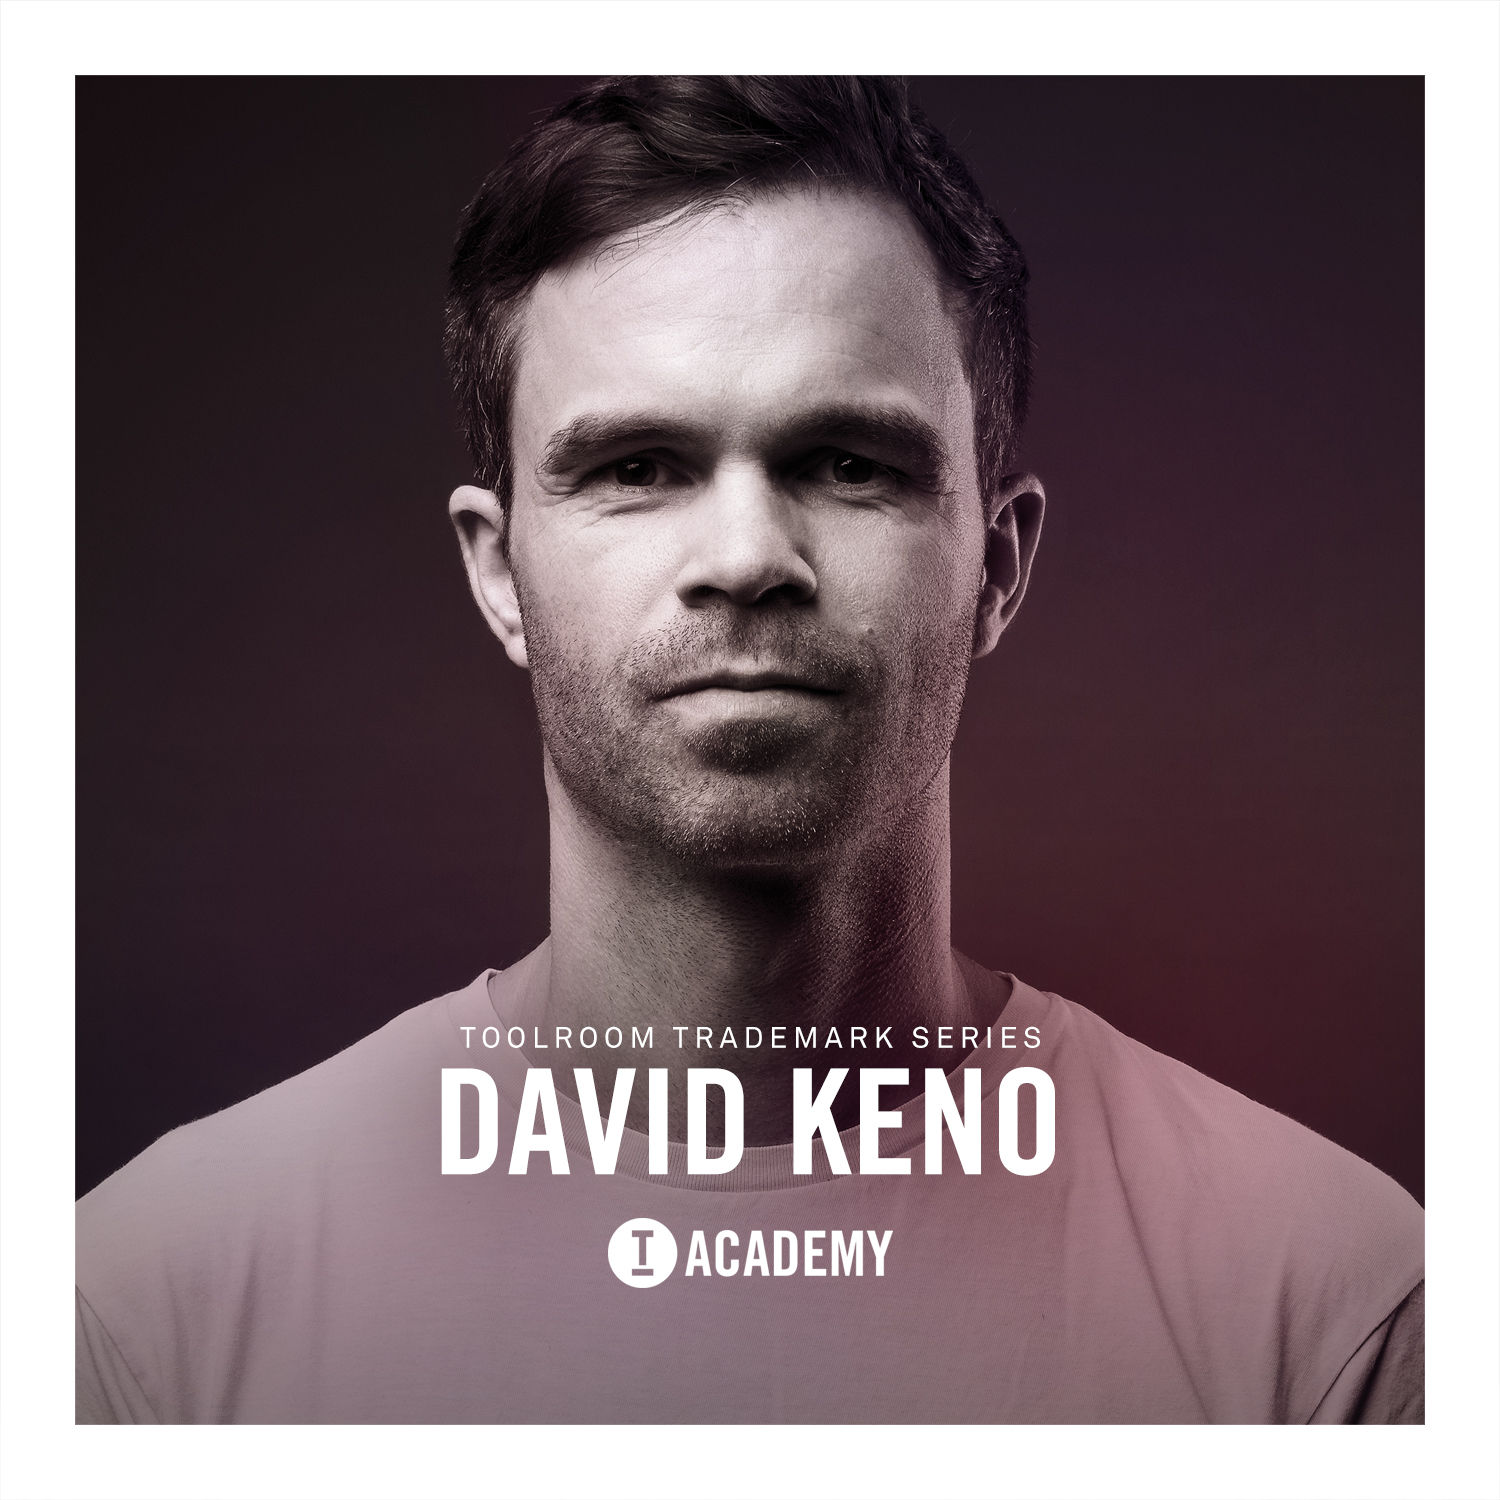 Toolroom Trademark Series  David Keno